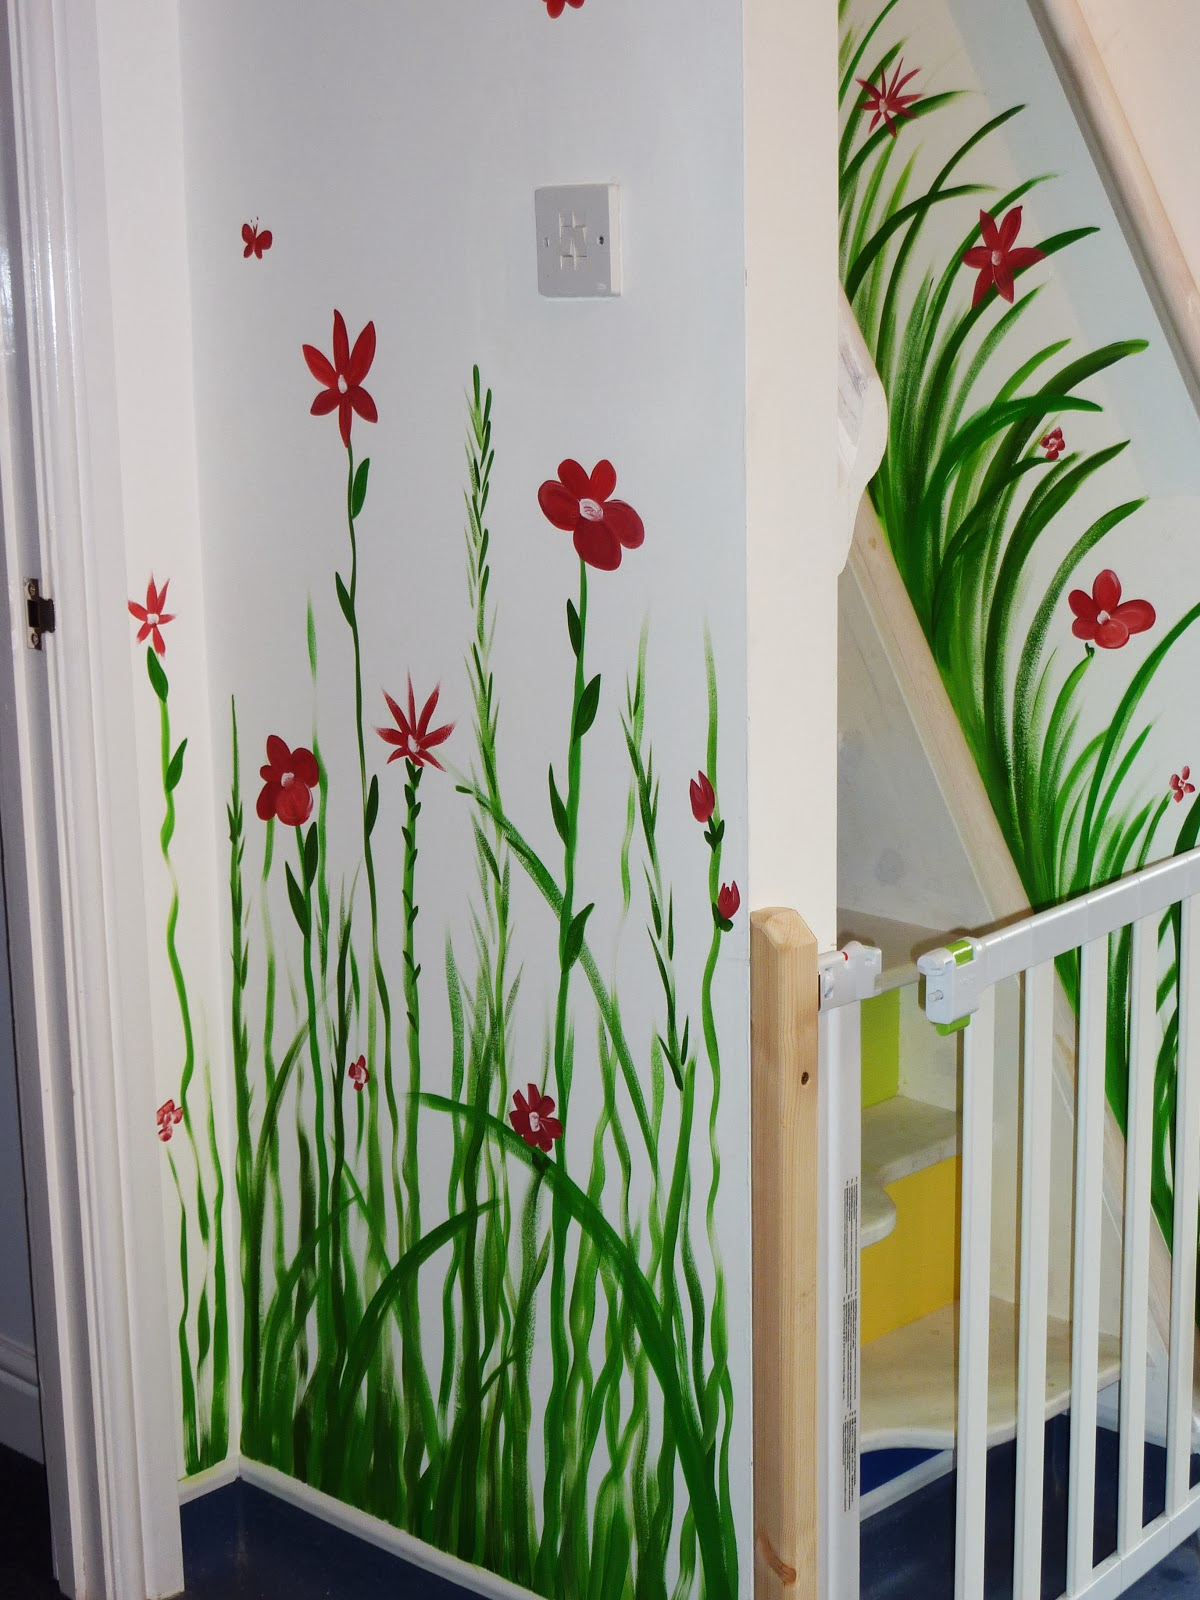 Joanna Perry - Top Mural Artist, Hand Painting Murals across the UK ...